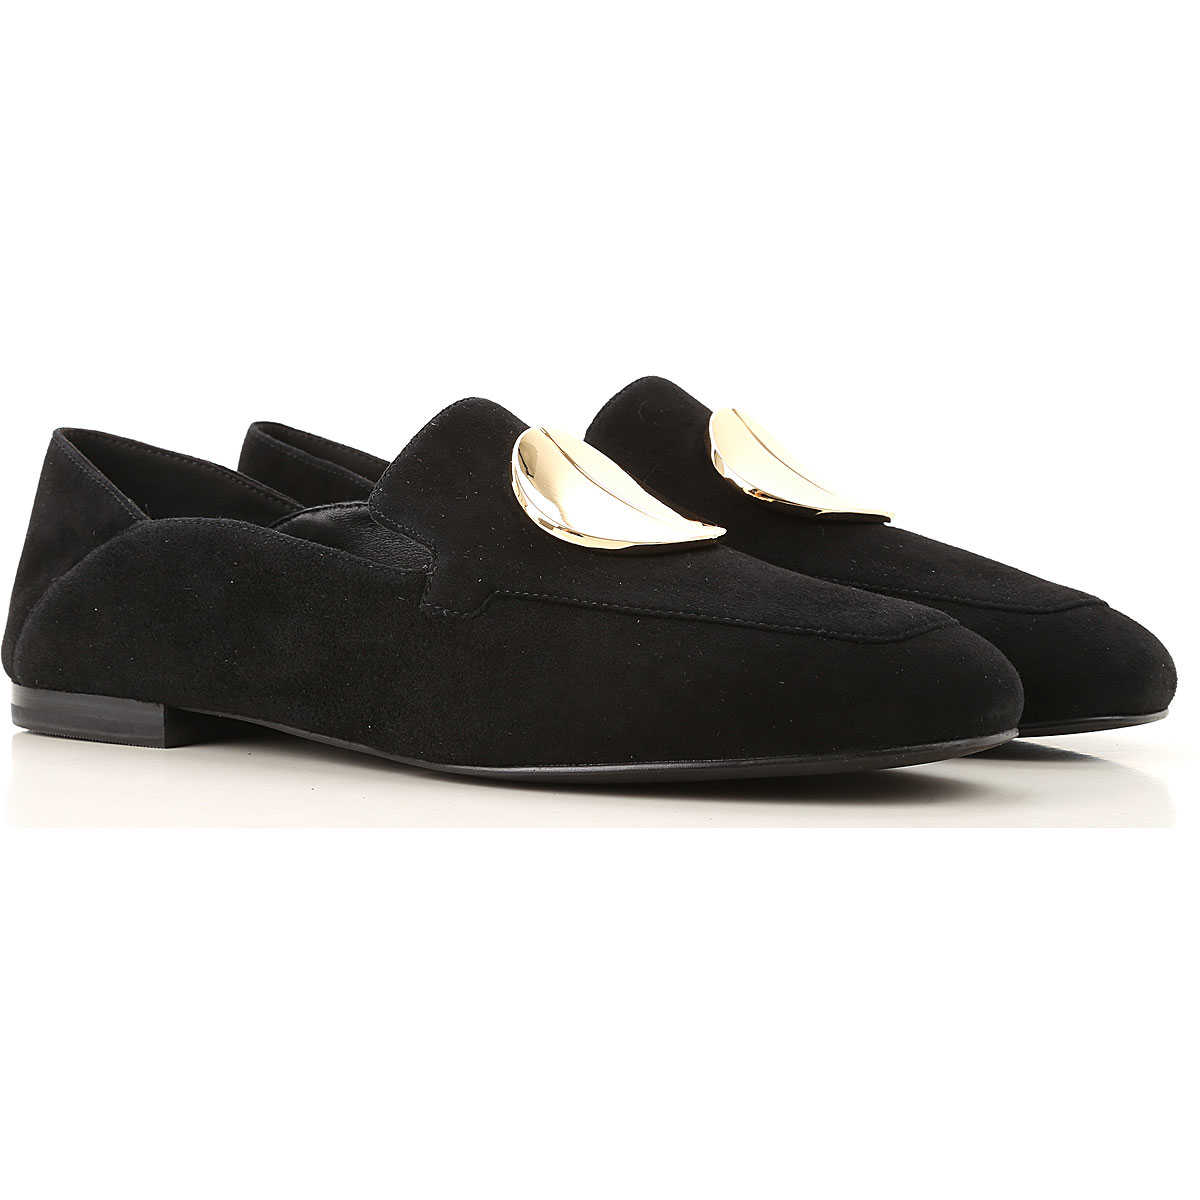 What For Loafers for Women Black SE - GOOFASH